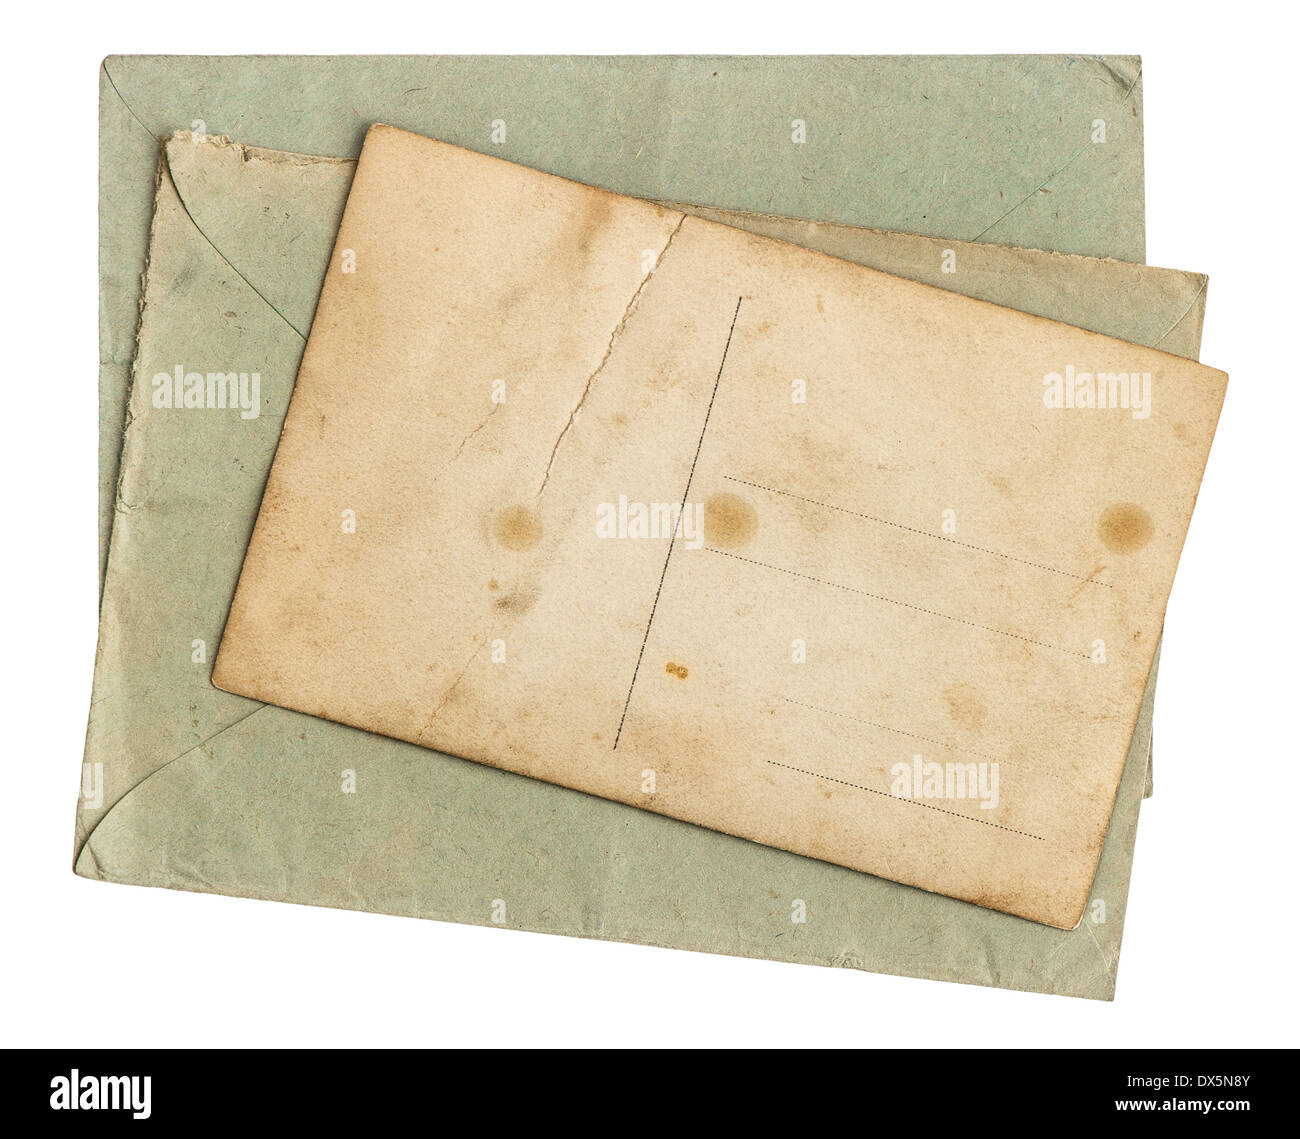 Enveloppe Vintage Airmail Envelope Vintage Stock Photos And Airmail Envelope